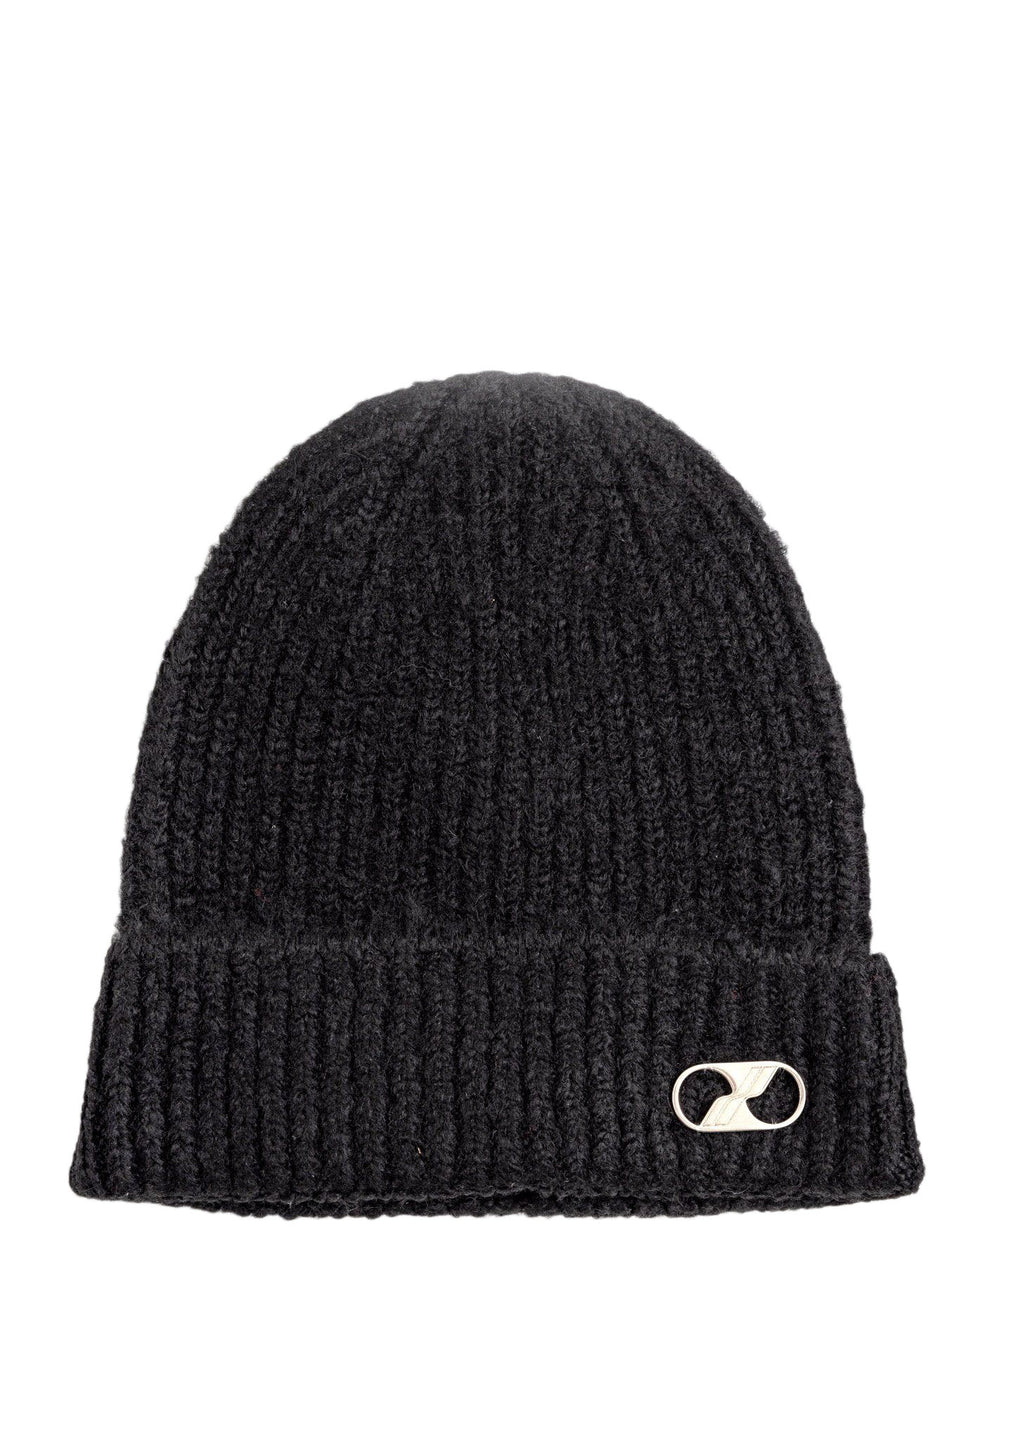 Black Embroidered Metal Logo Long Beanie